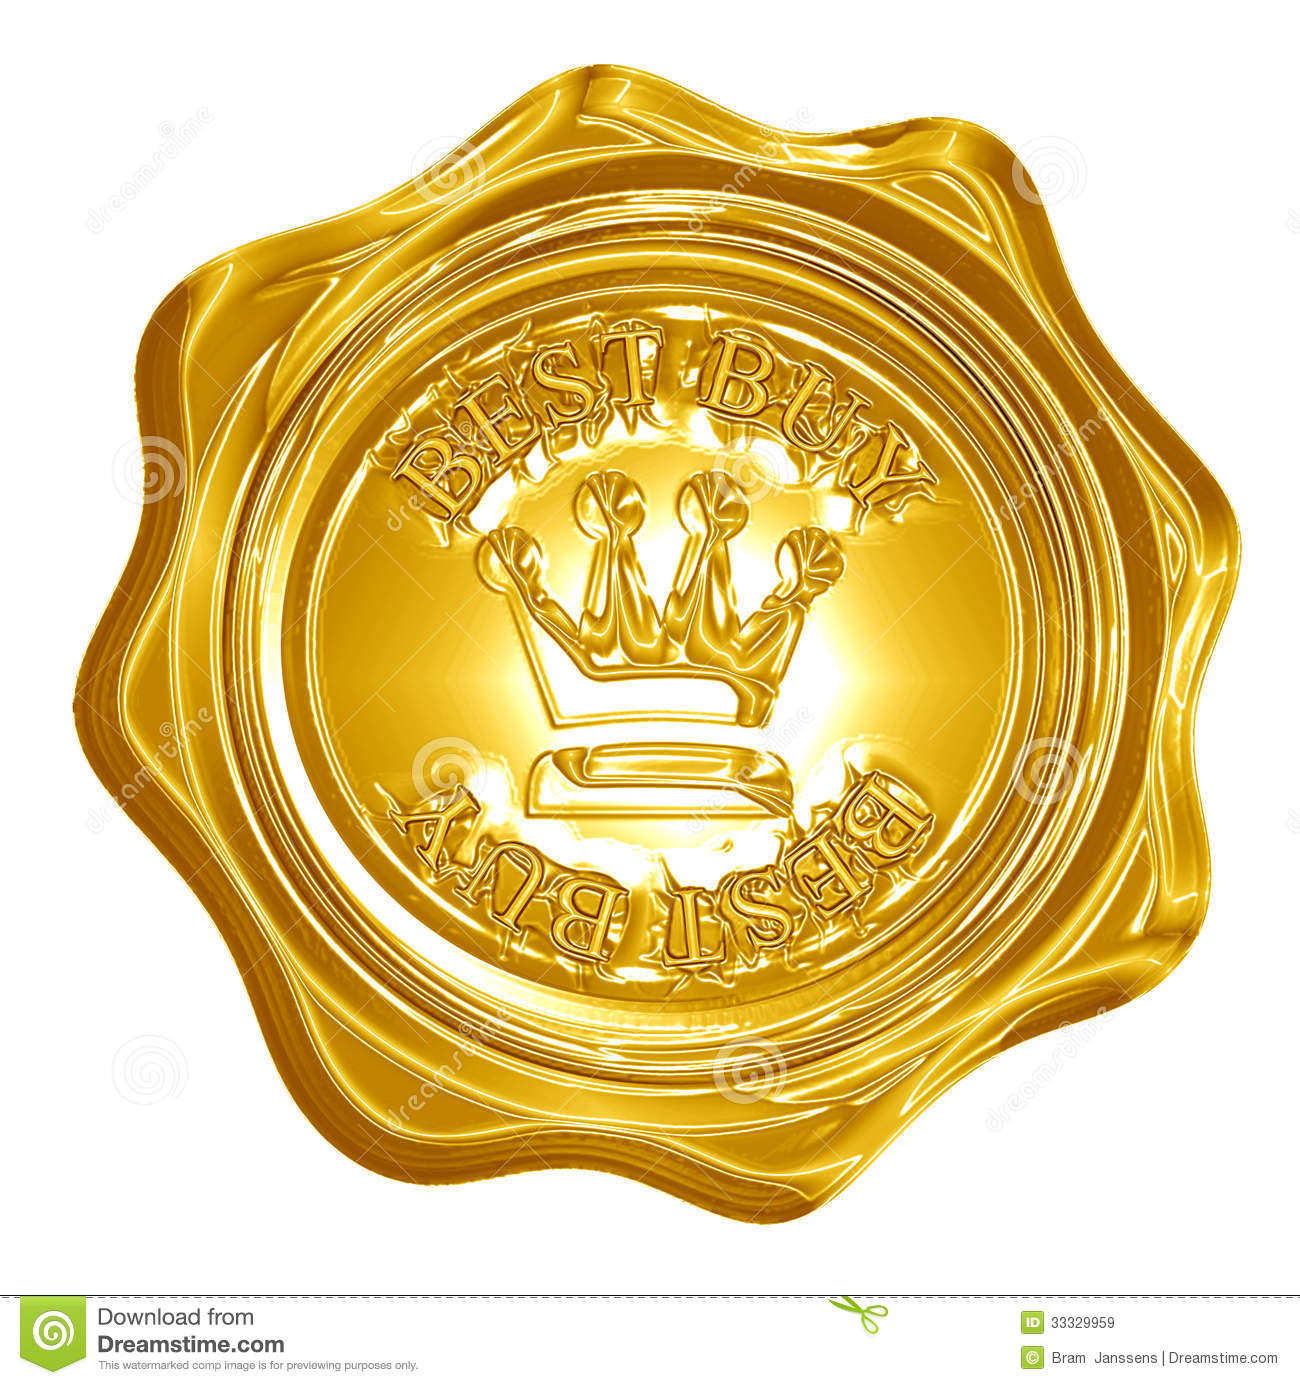 Best Buy Royalty Free Stock Images - Image: 33329959: dreamstime.com/royalty-free-stock-images-best-buy-golden-seal...